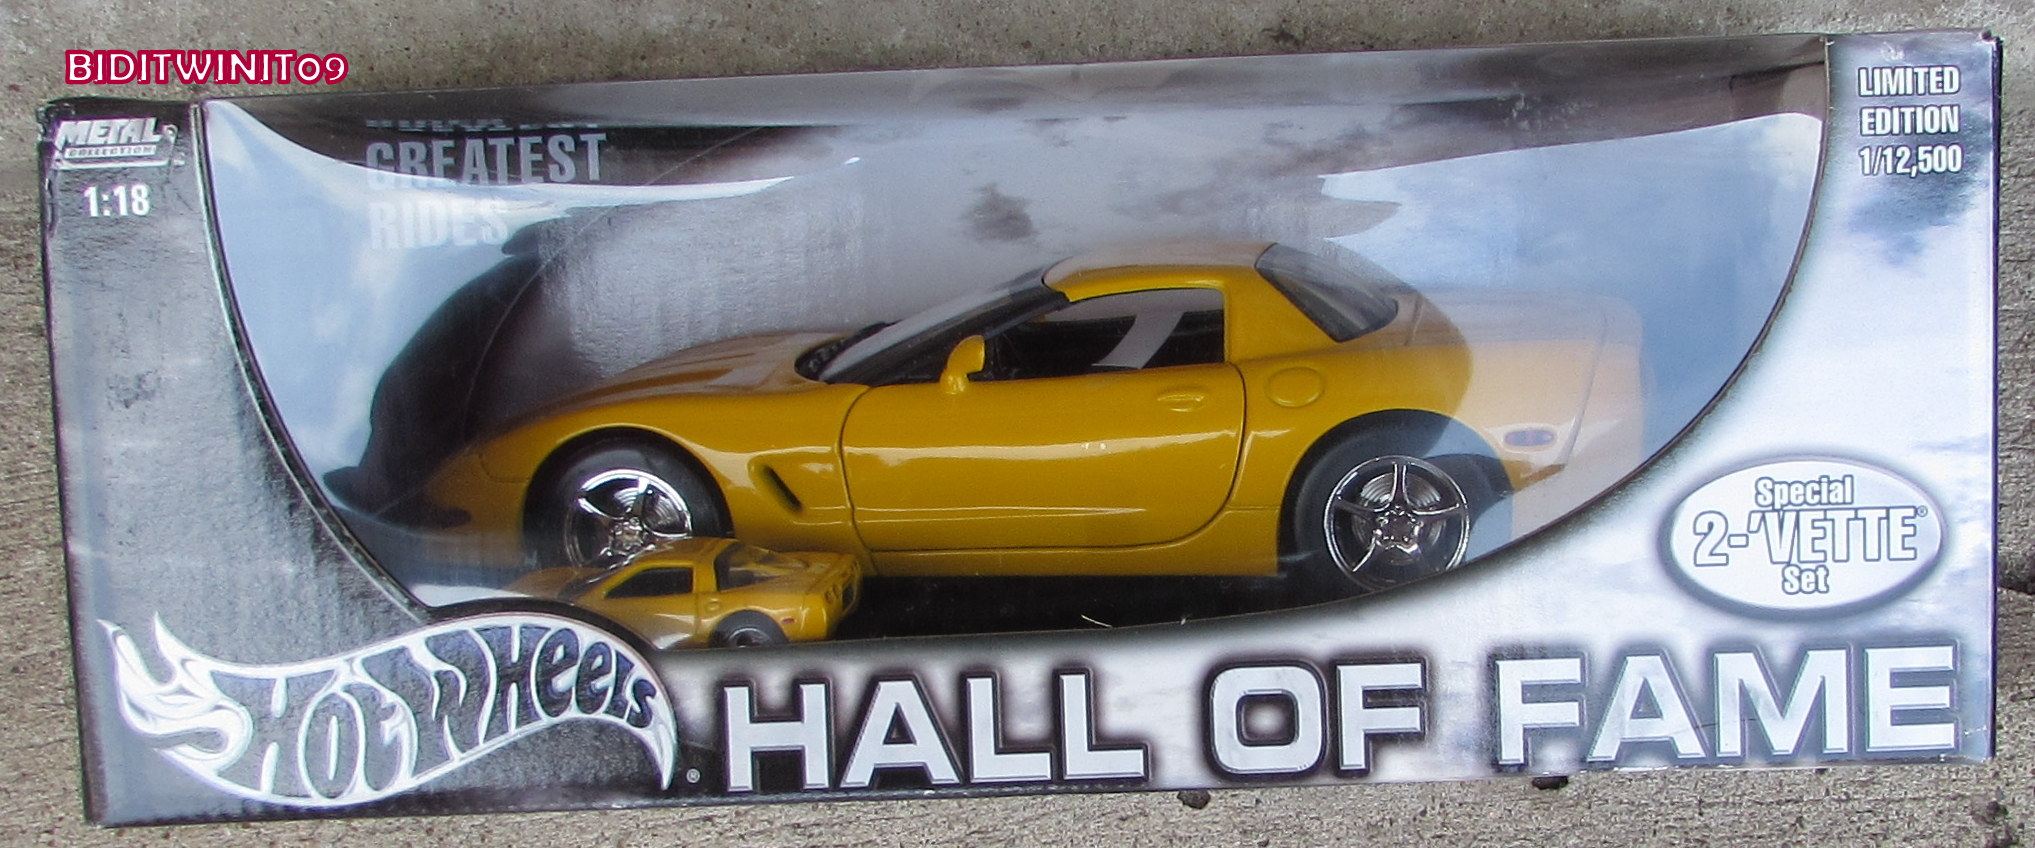 HOT WHEELS HALL OF FAME SPECIAL 2 VETTE SET 1:18 YELLOW E+